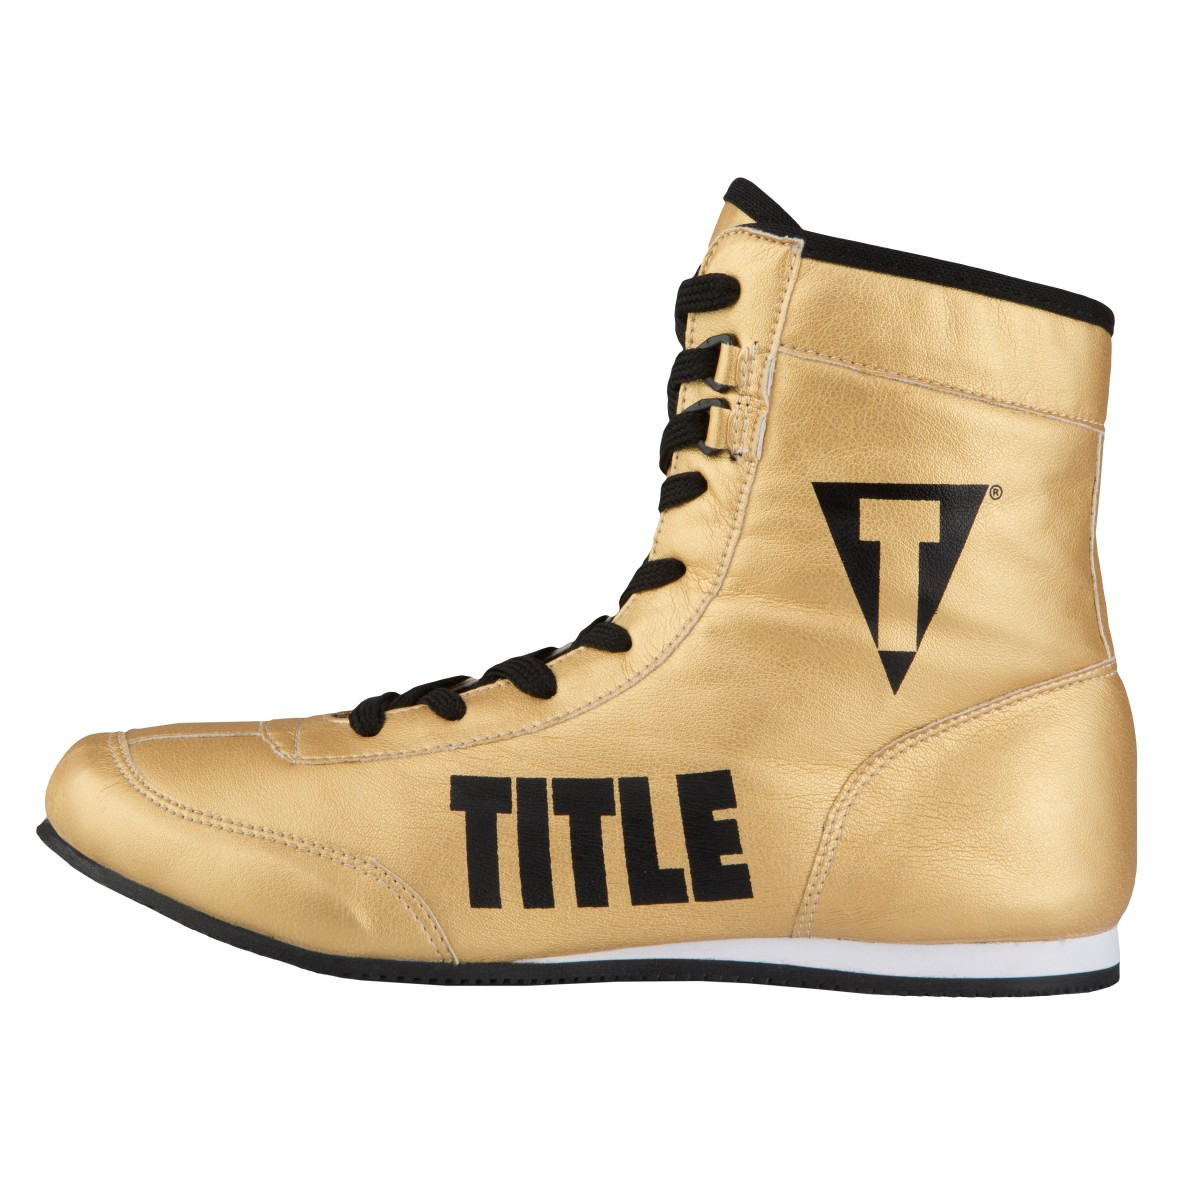 Women's Title Money Metallic Flash Boxing Shoes